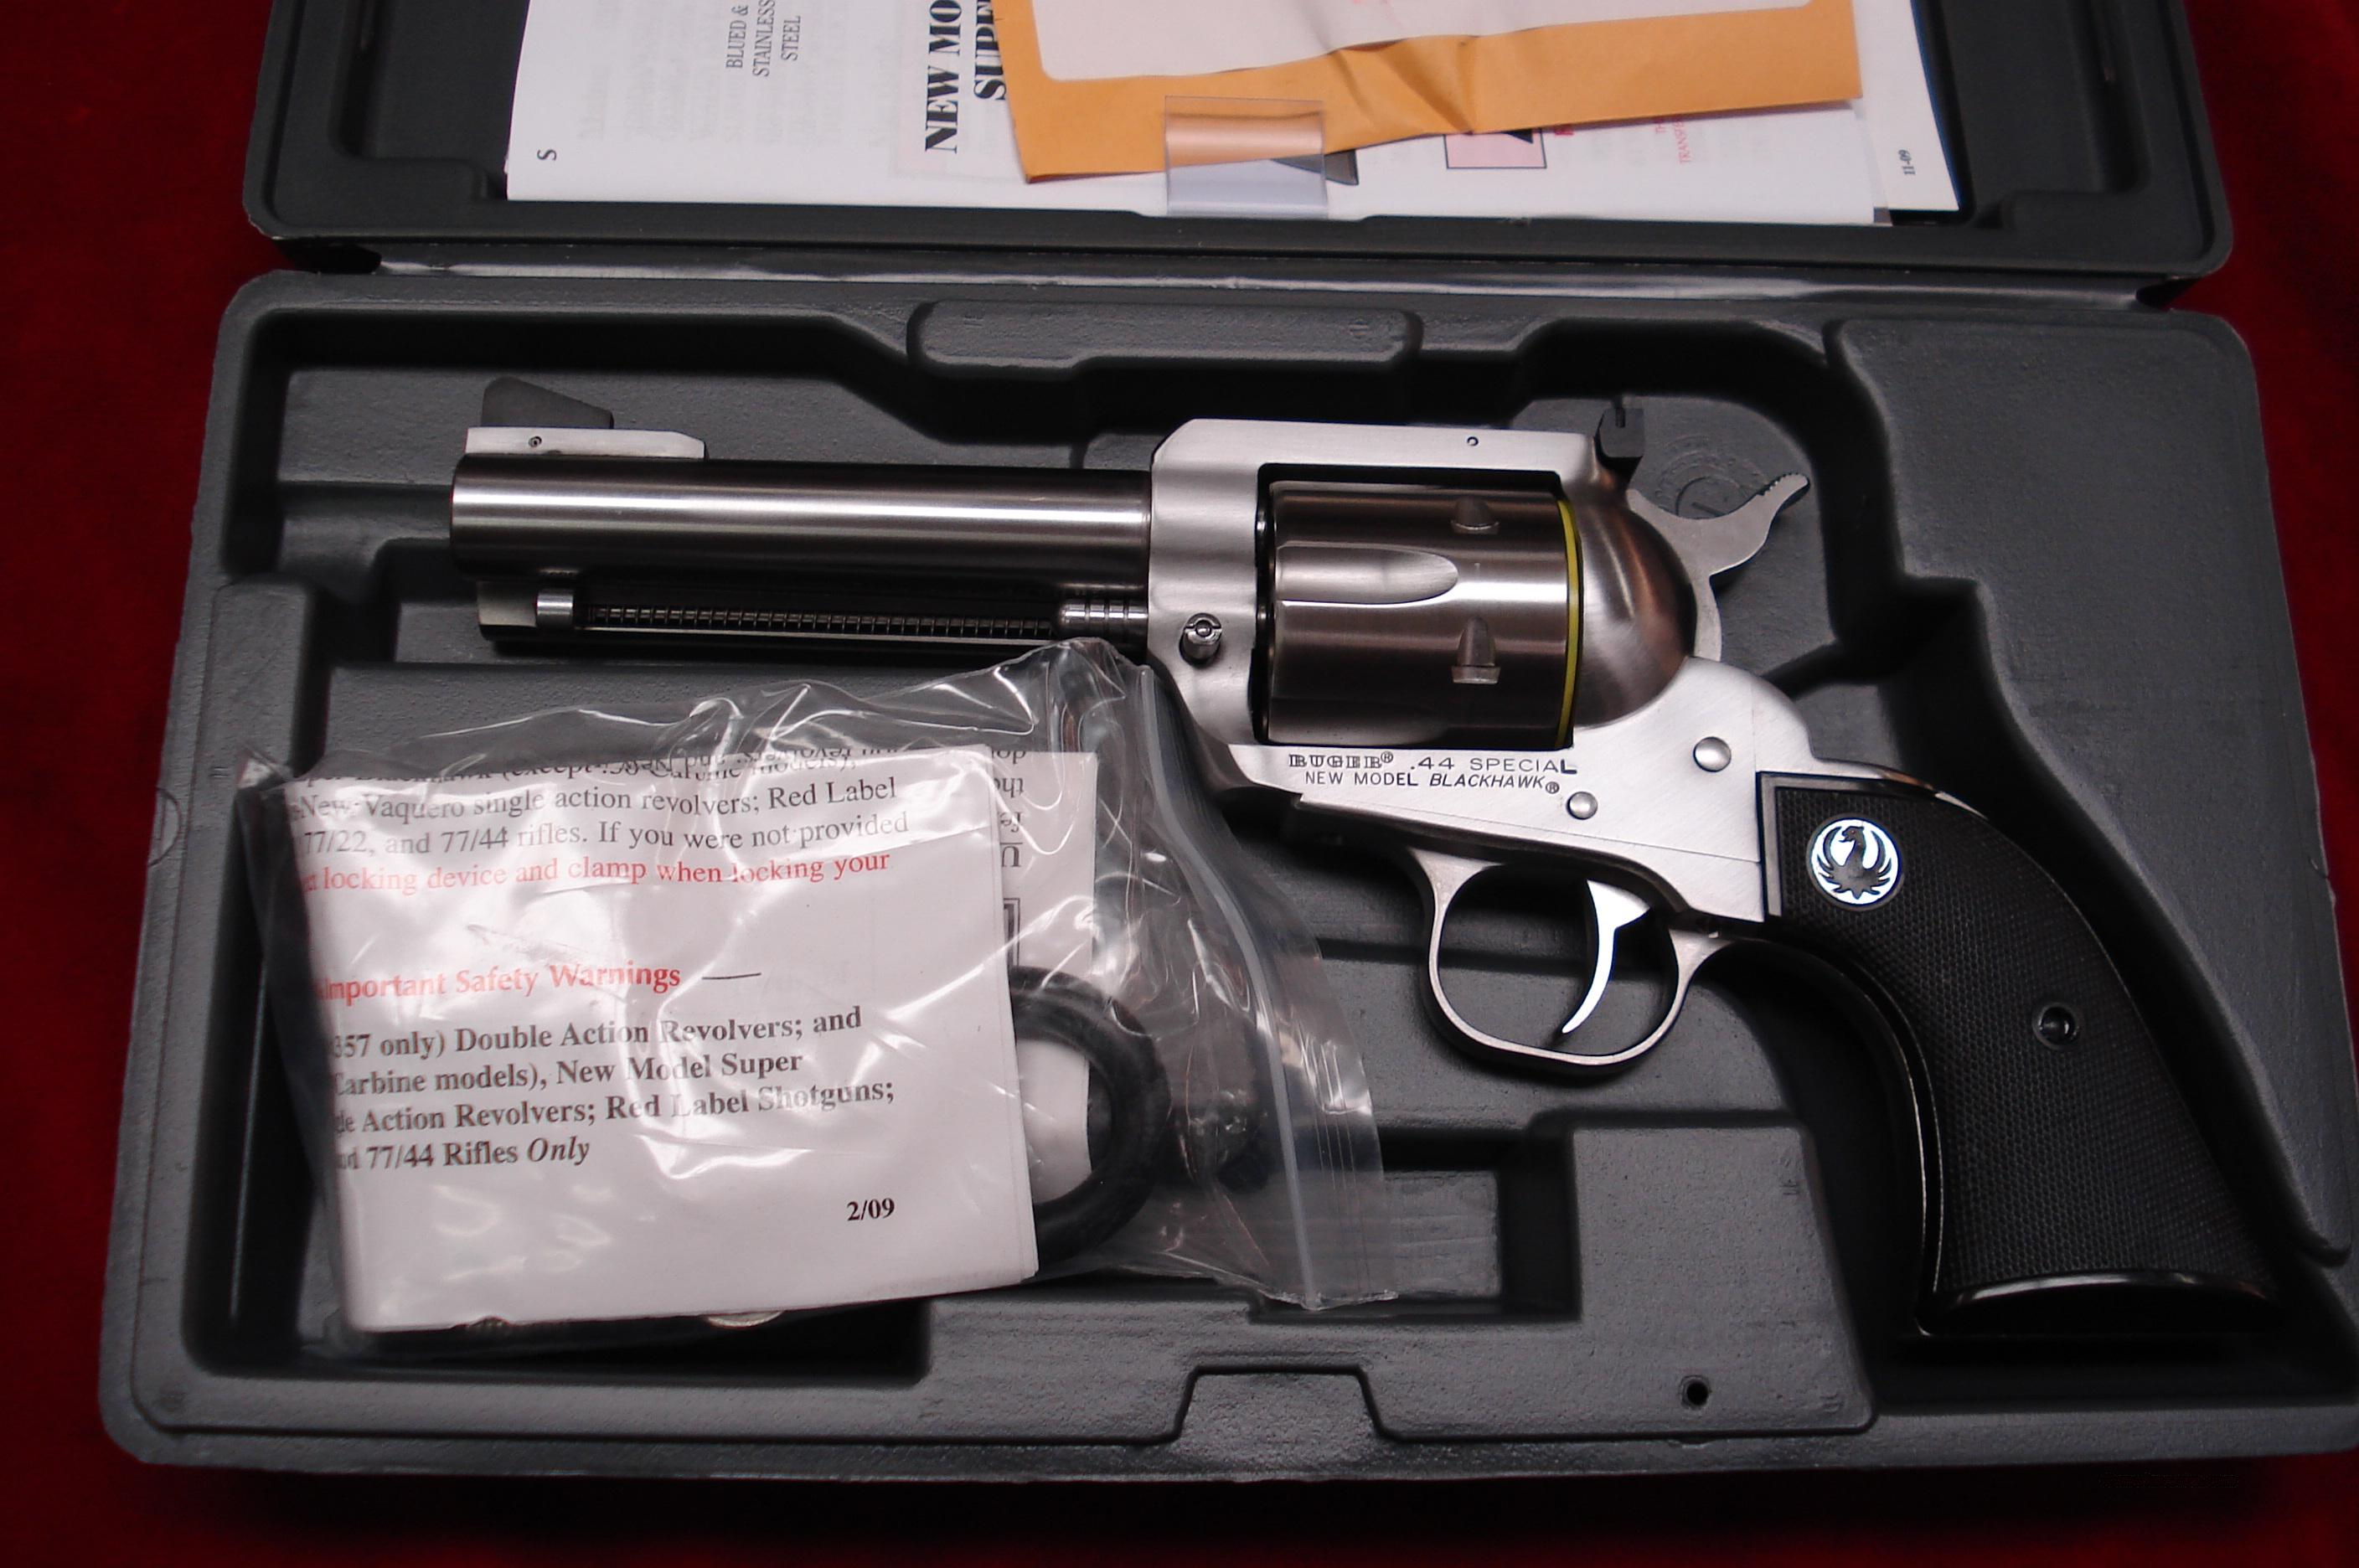 "RUGER STAINLESS NEW MODEL BLACKHAWK 44 SPECIAL CAL. 4 5/8"" FLATTOP  NEW (KNVB-444-SPCL)  Guns > Pistols > Ruger Single Action Revolvers > Blackhawk Type"